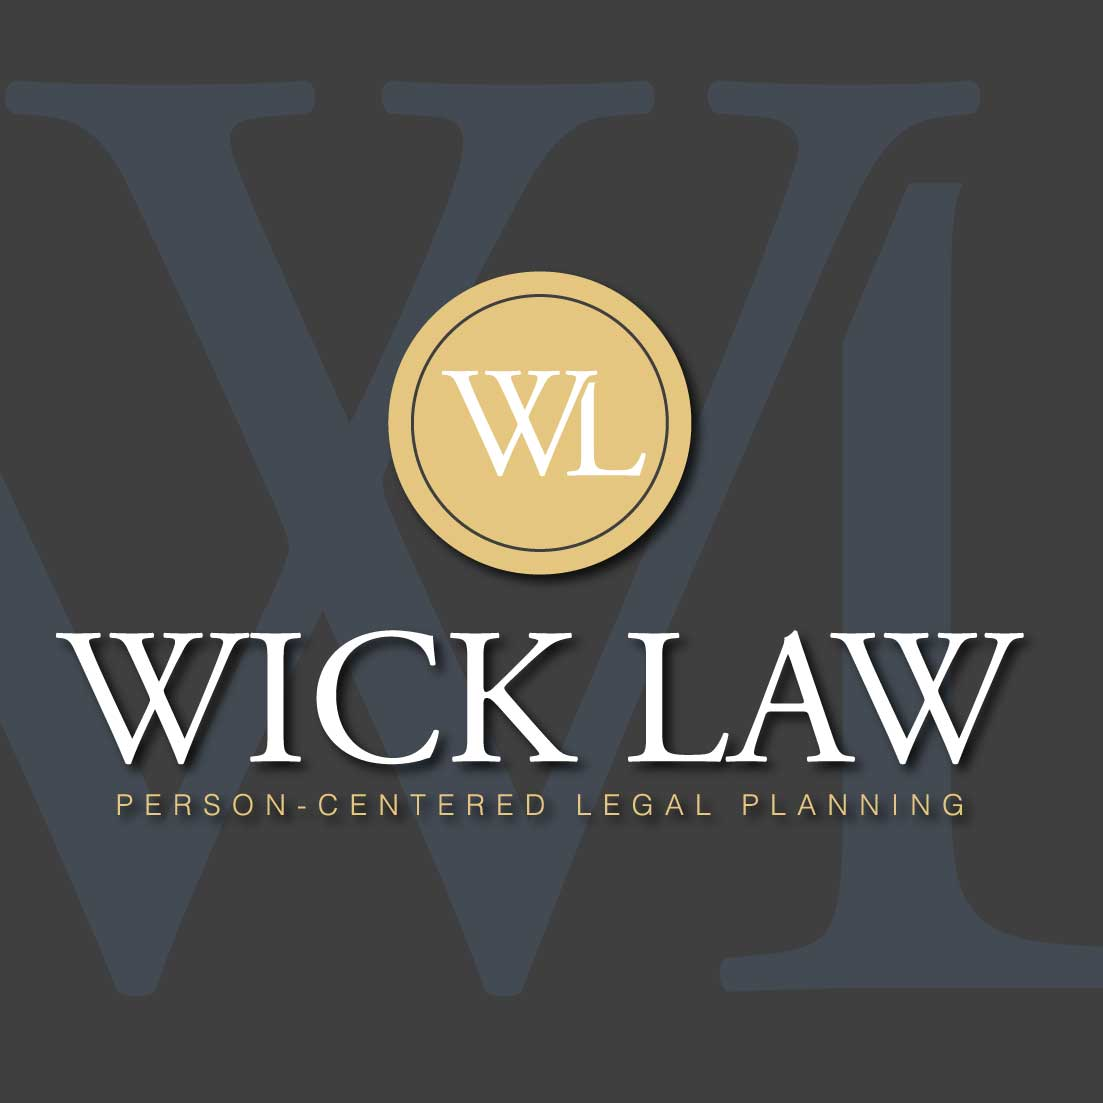 David Wick Law - Person Centered Legal Planning Logo Design